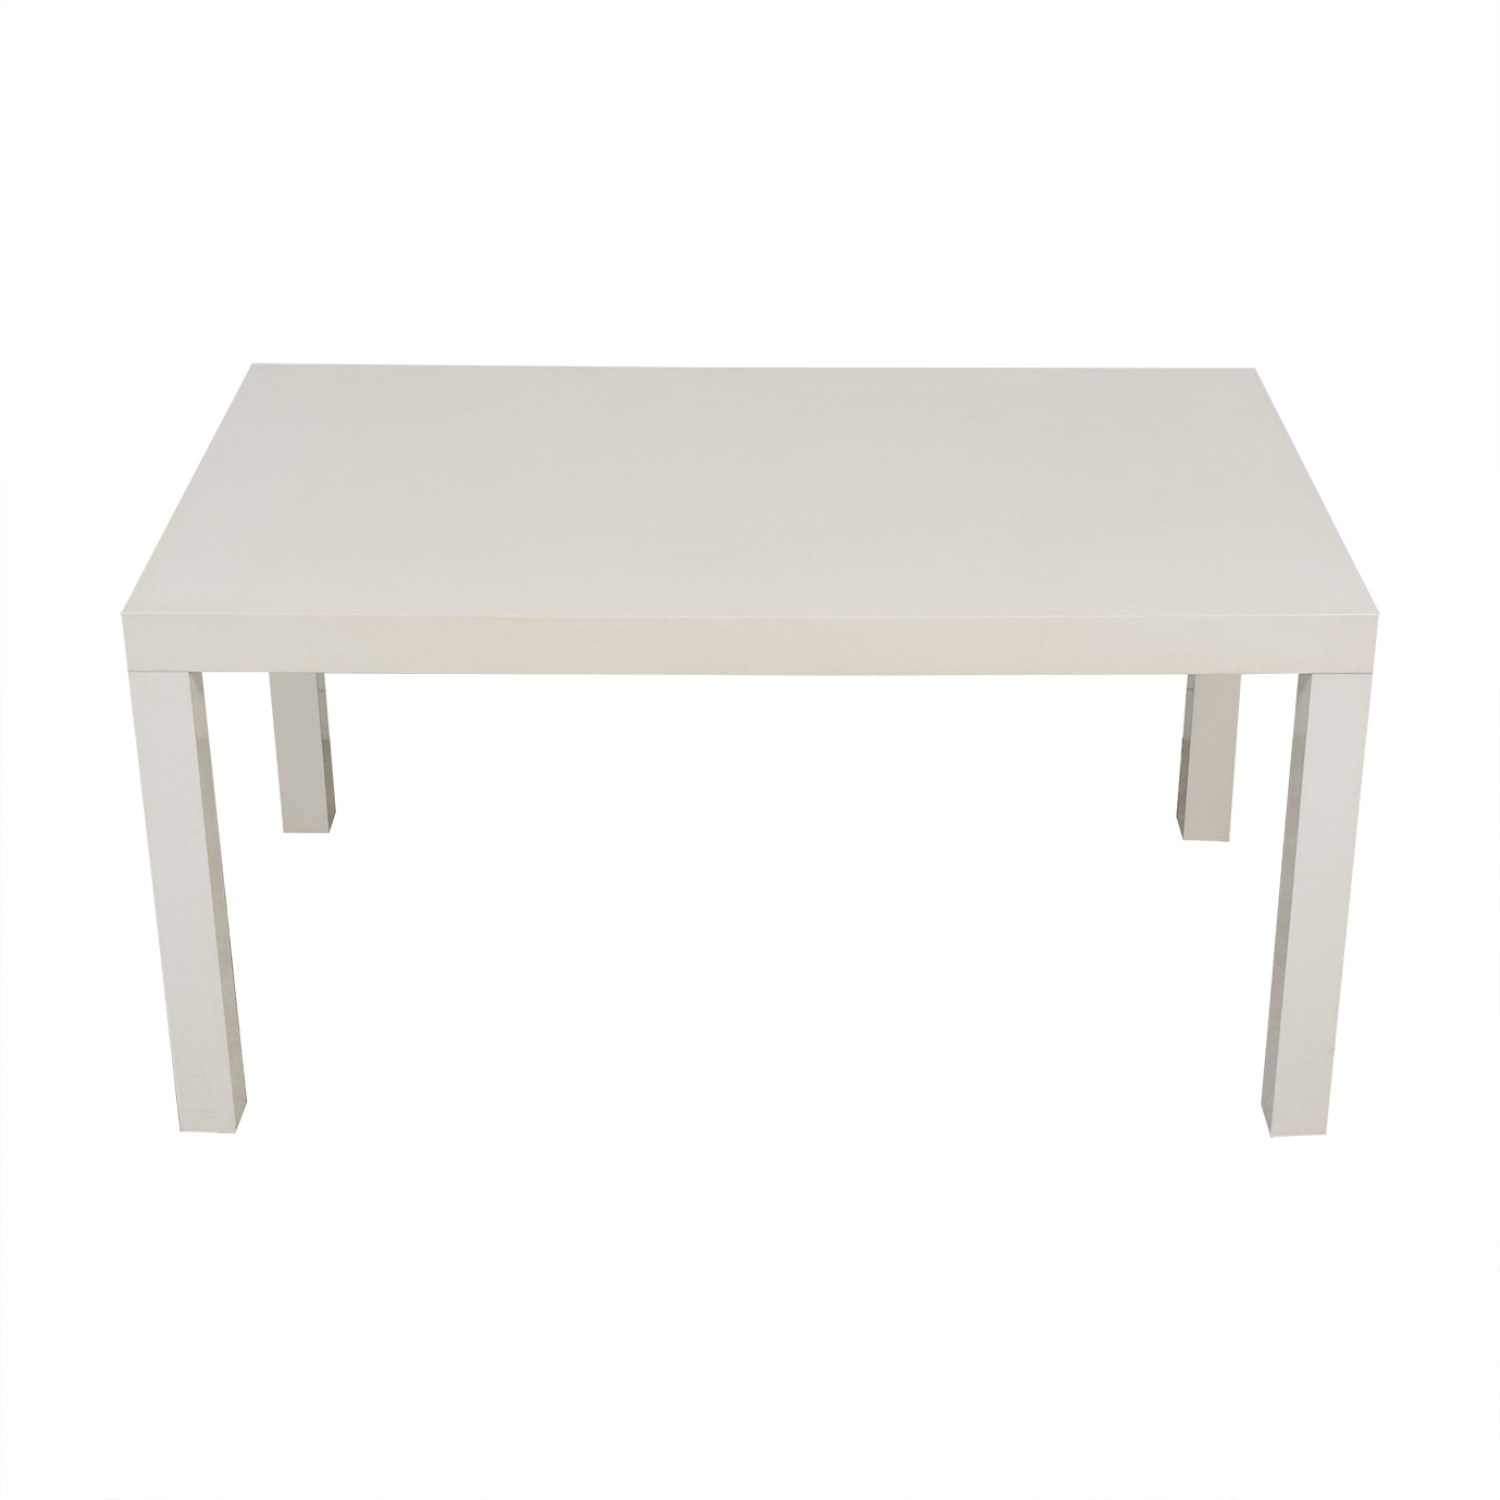 buy West Elm Parsons Style Dining Table West Elm Dinner Tables